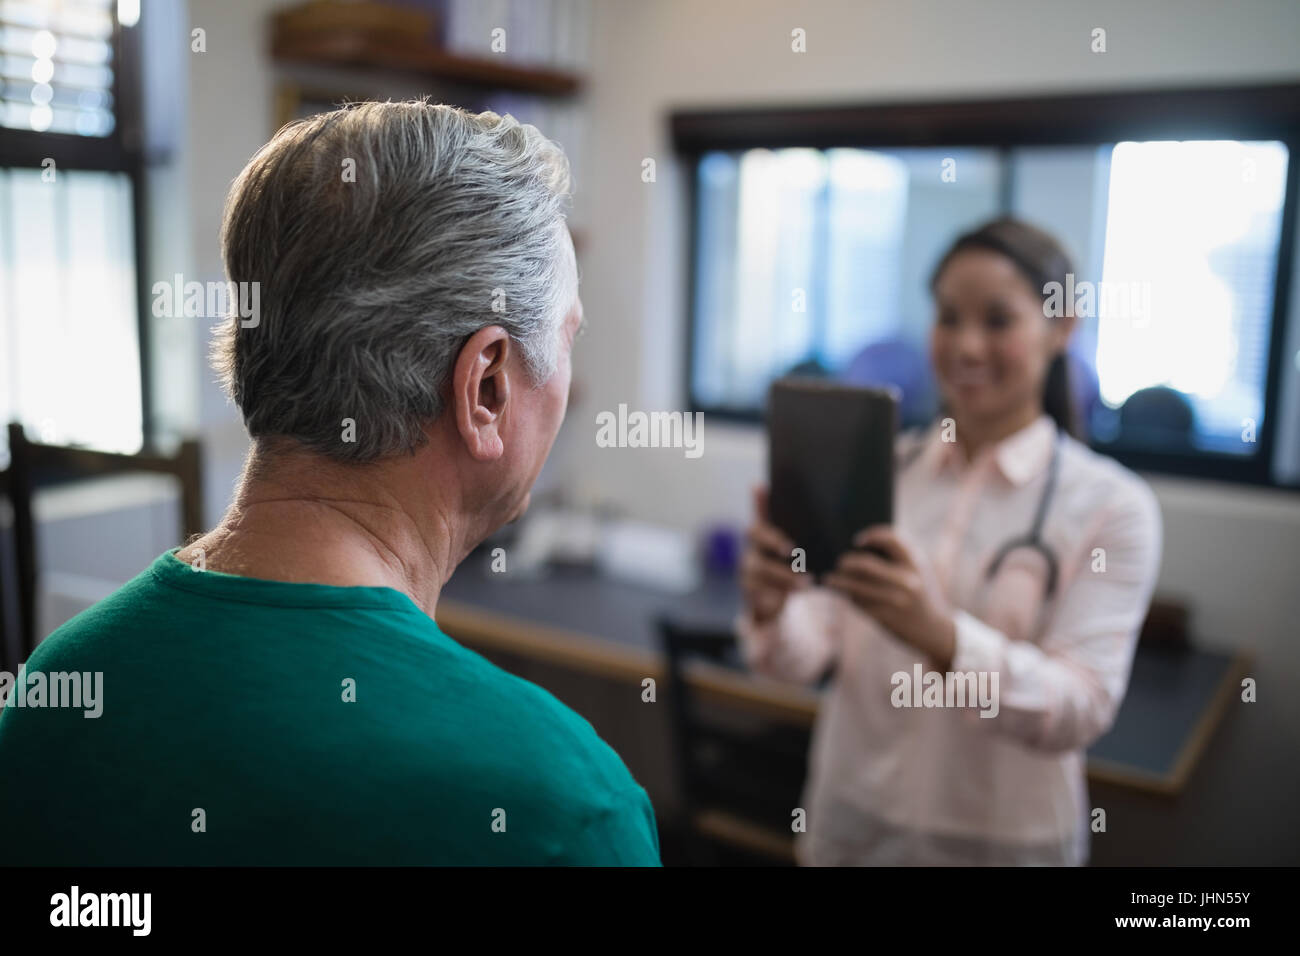 Rear view of senior male patient being photographed by female therapist at hospital ward - Stock Image